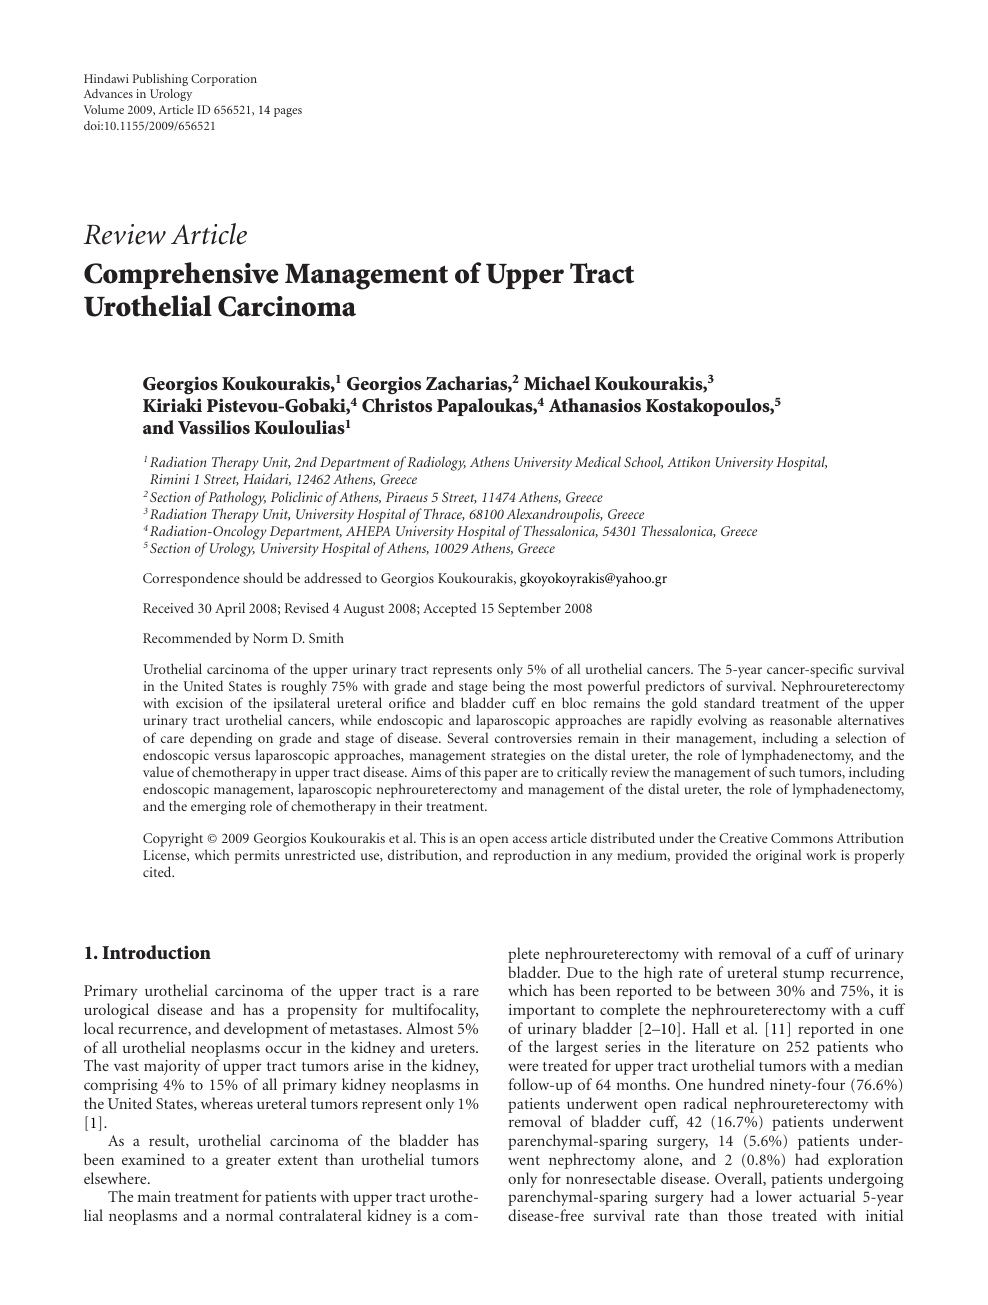 Comprehensive Management of Upper Tract Urothelial Carcinoma – topic